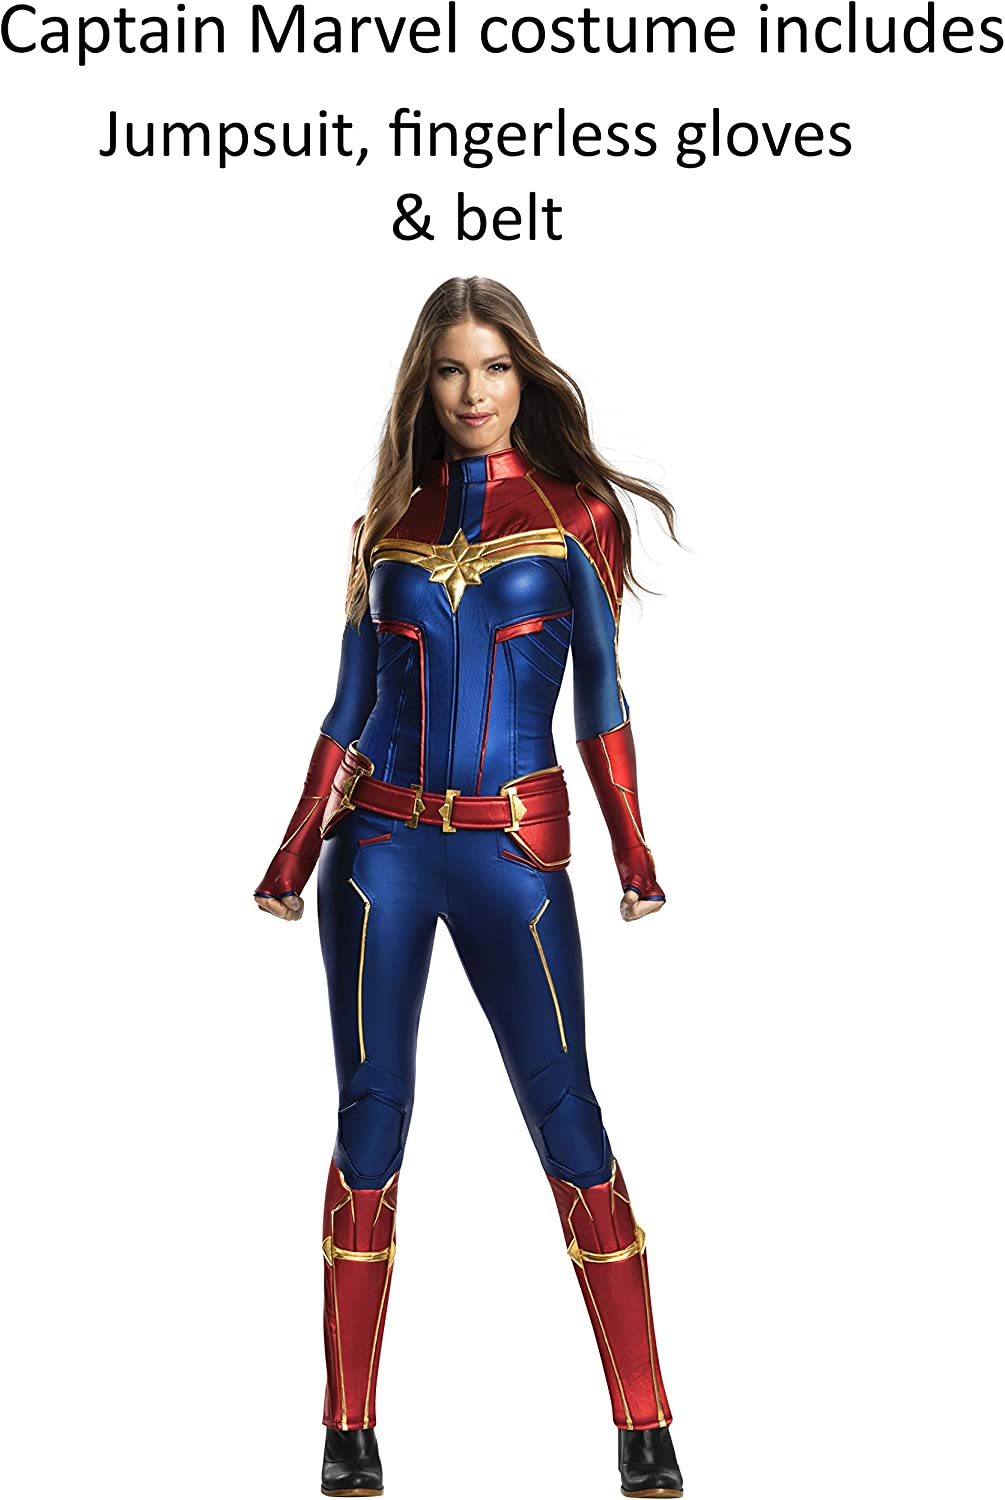 Amazon Com Rubie S Women S Marvel Adult Captain Marvel Adult Grand Heritage Costume Adult Costume Clothing As his alter ego, billy batson. rubie s women s marvel adult captain marvel adult grand heritage costume adult costume